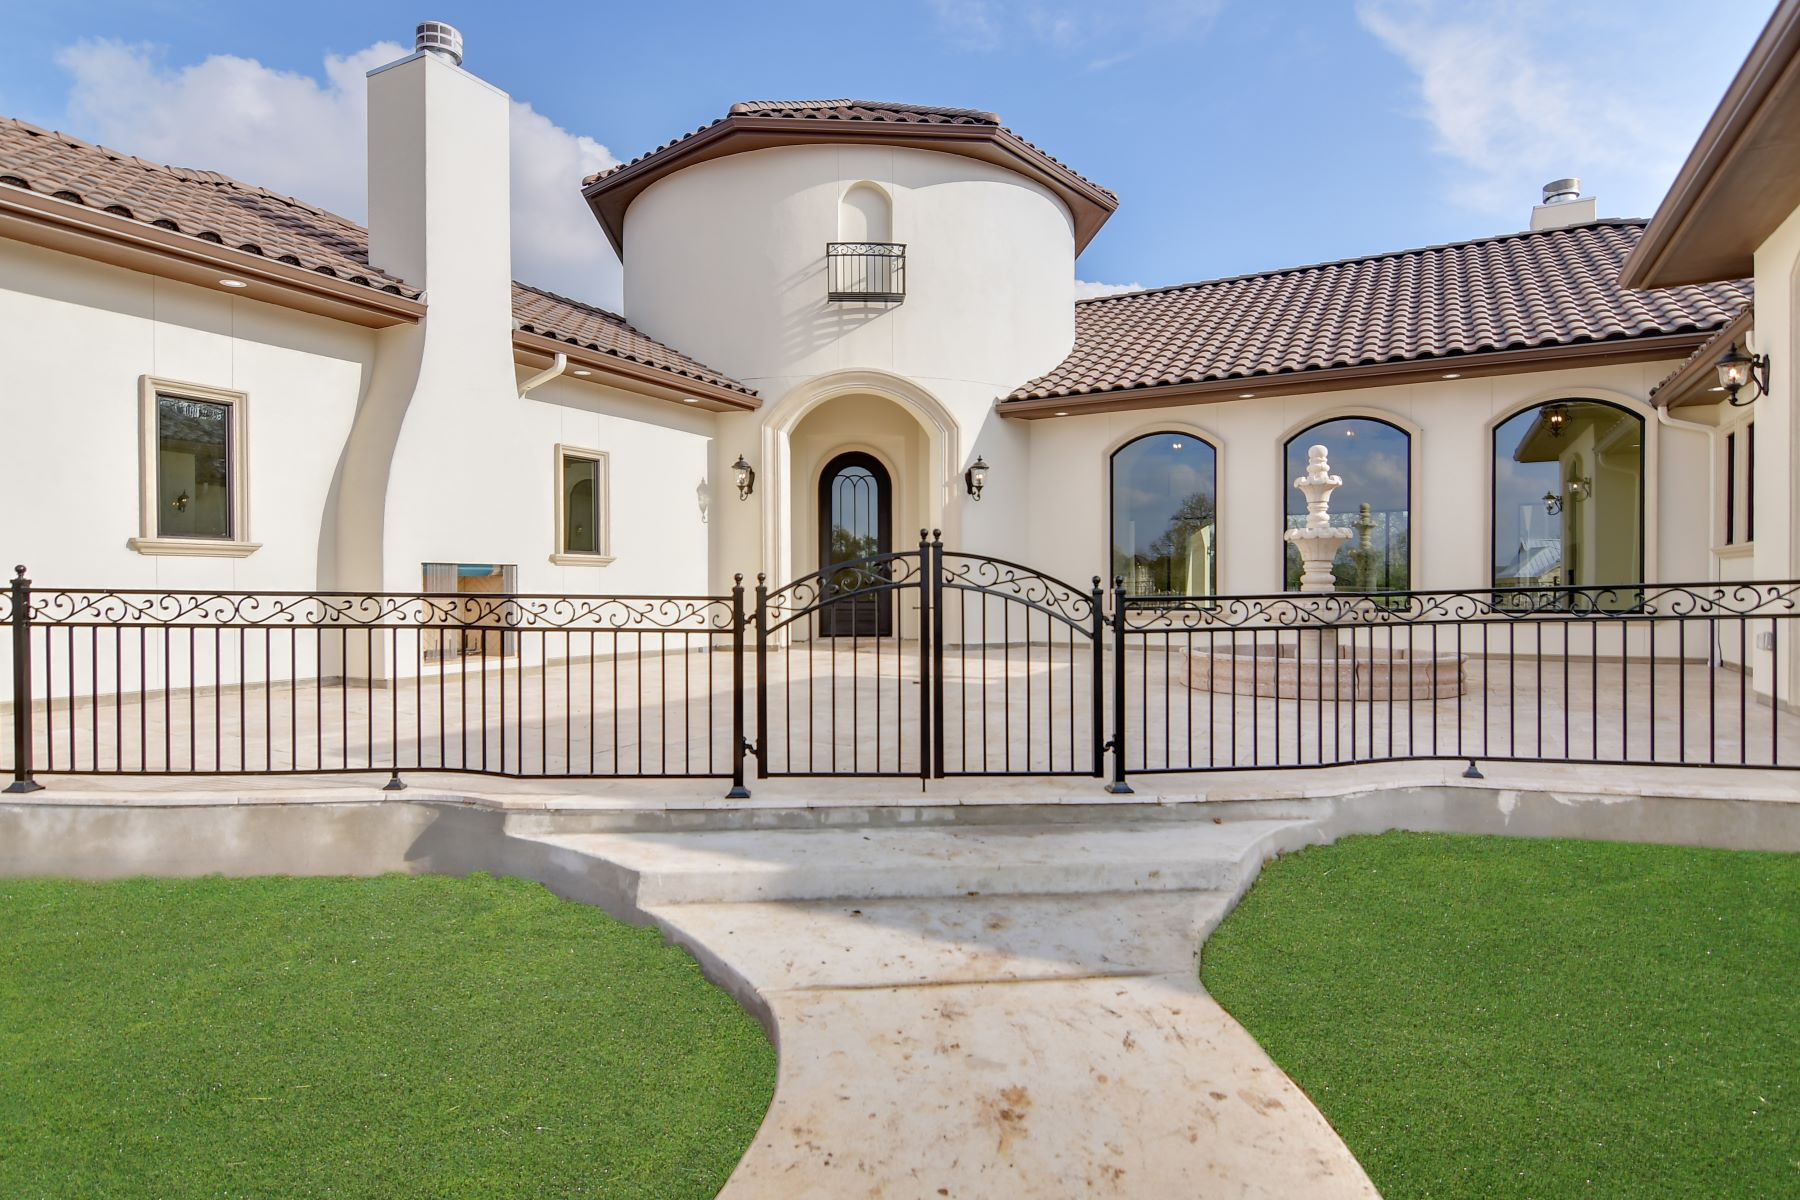 Single Family Homes for Sale at Luxury Living in Vintage Oaks 491 Curvatura New Braunfels, Texas 78132 United States